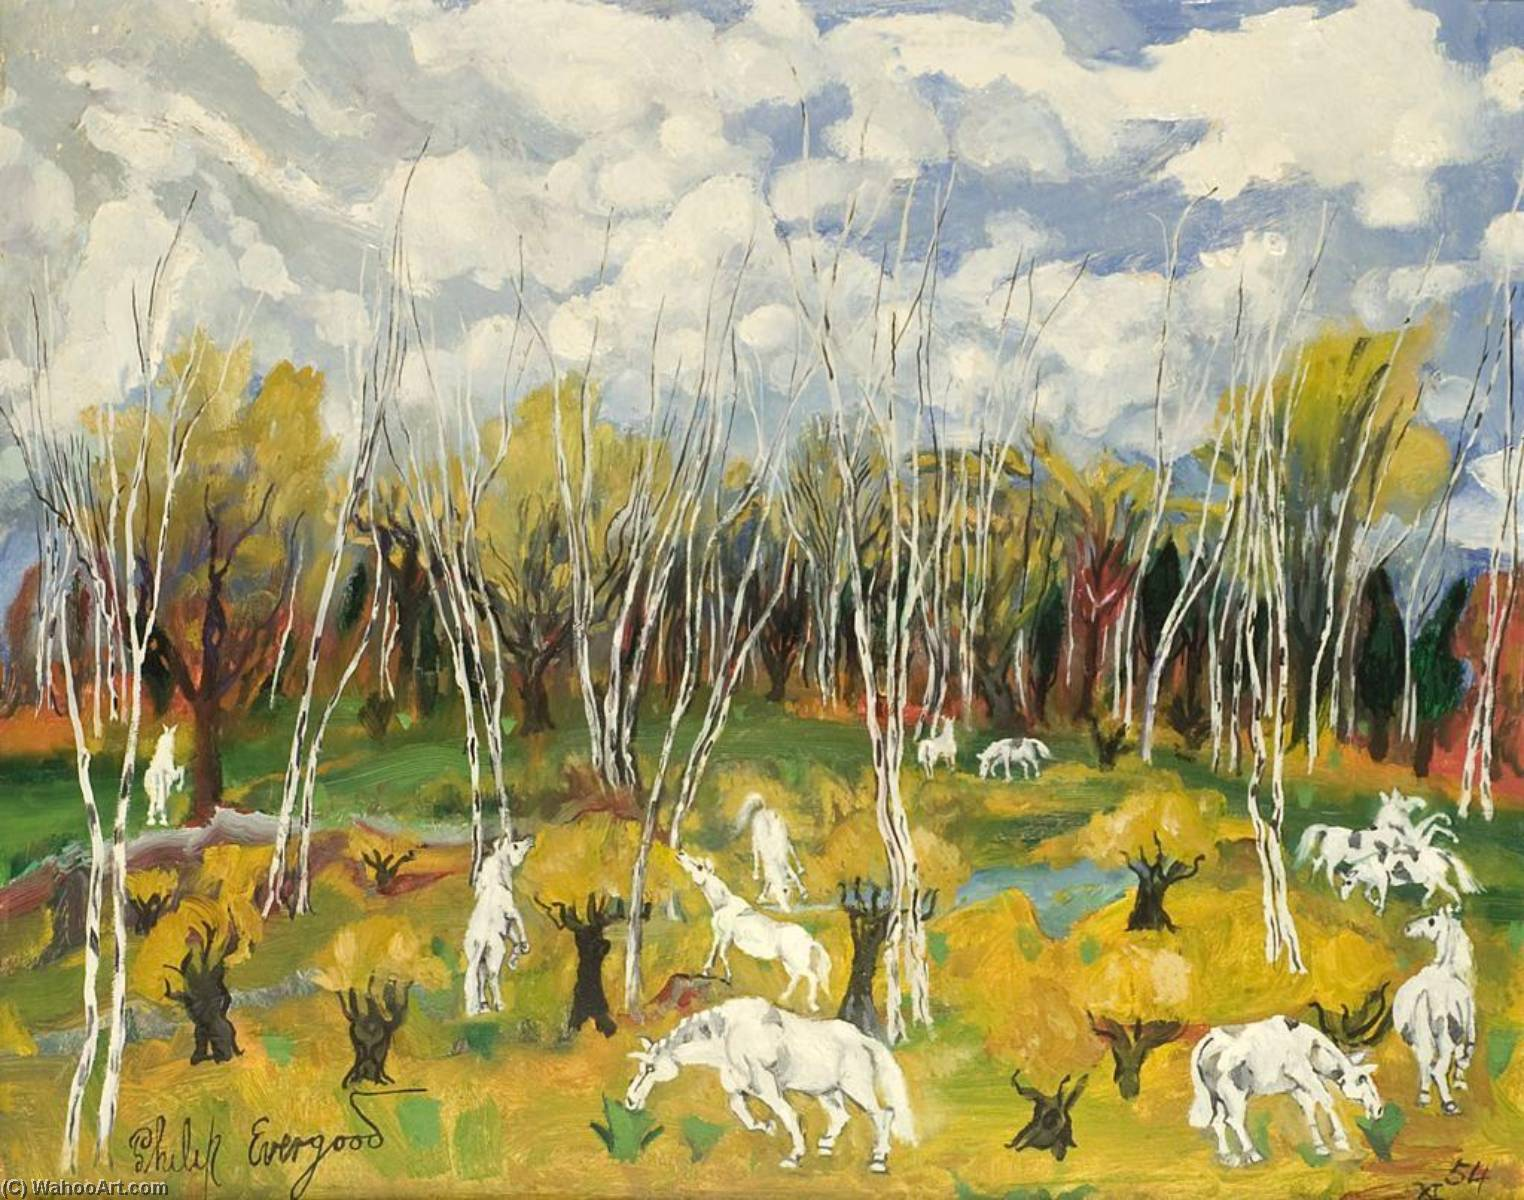 Birch Tree and White Horses, Oil by Philip Evergood (1901-1973)